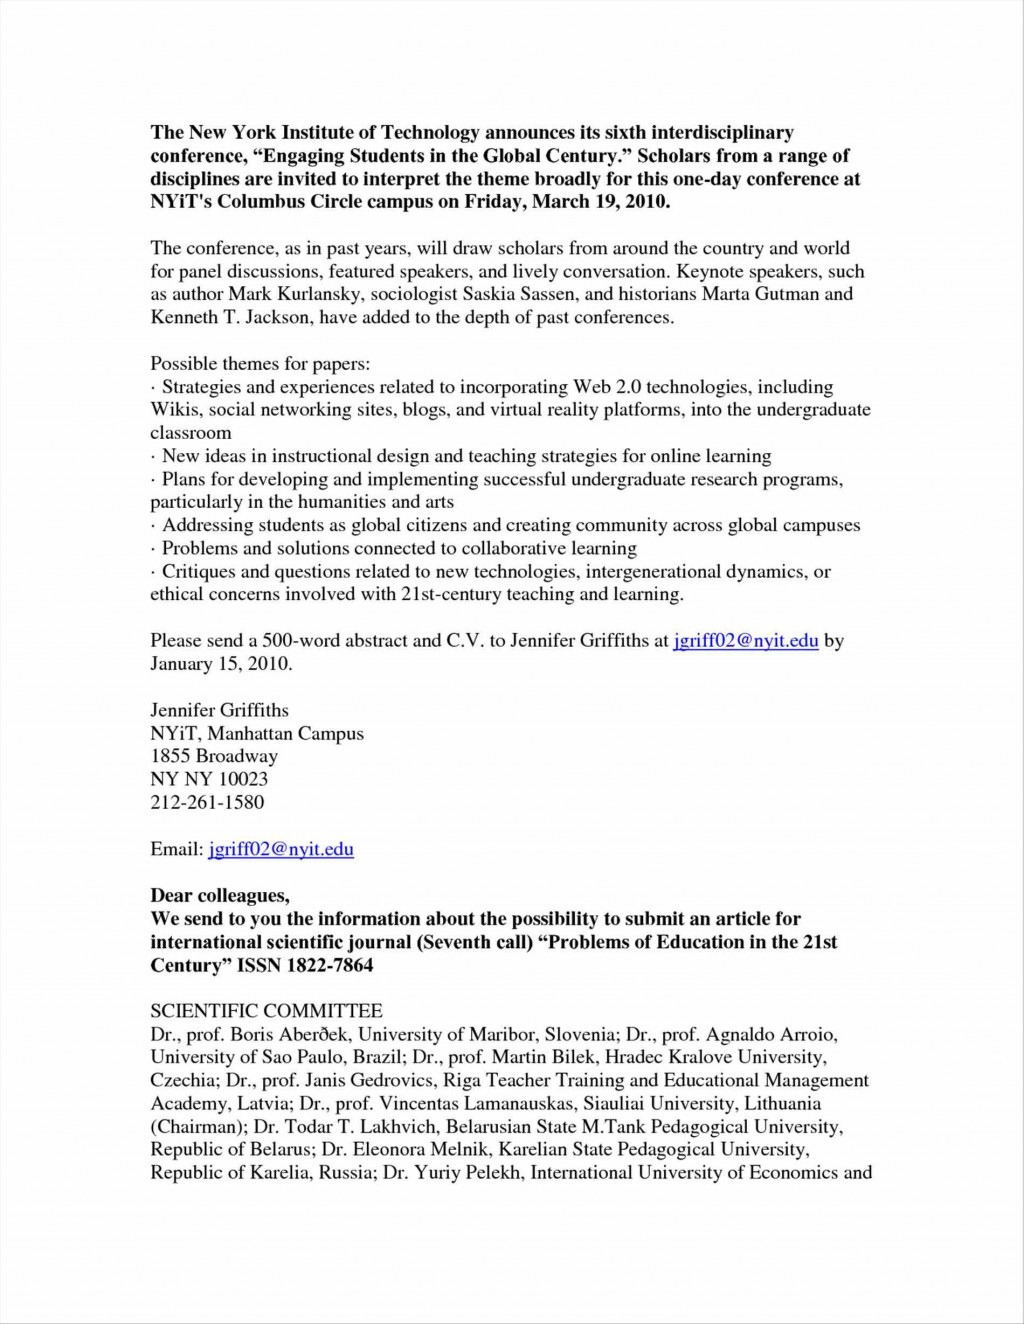 008 Apa Style Research Paper Template Format Soap An Example Of L How To Write Outline Sensational A In Large